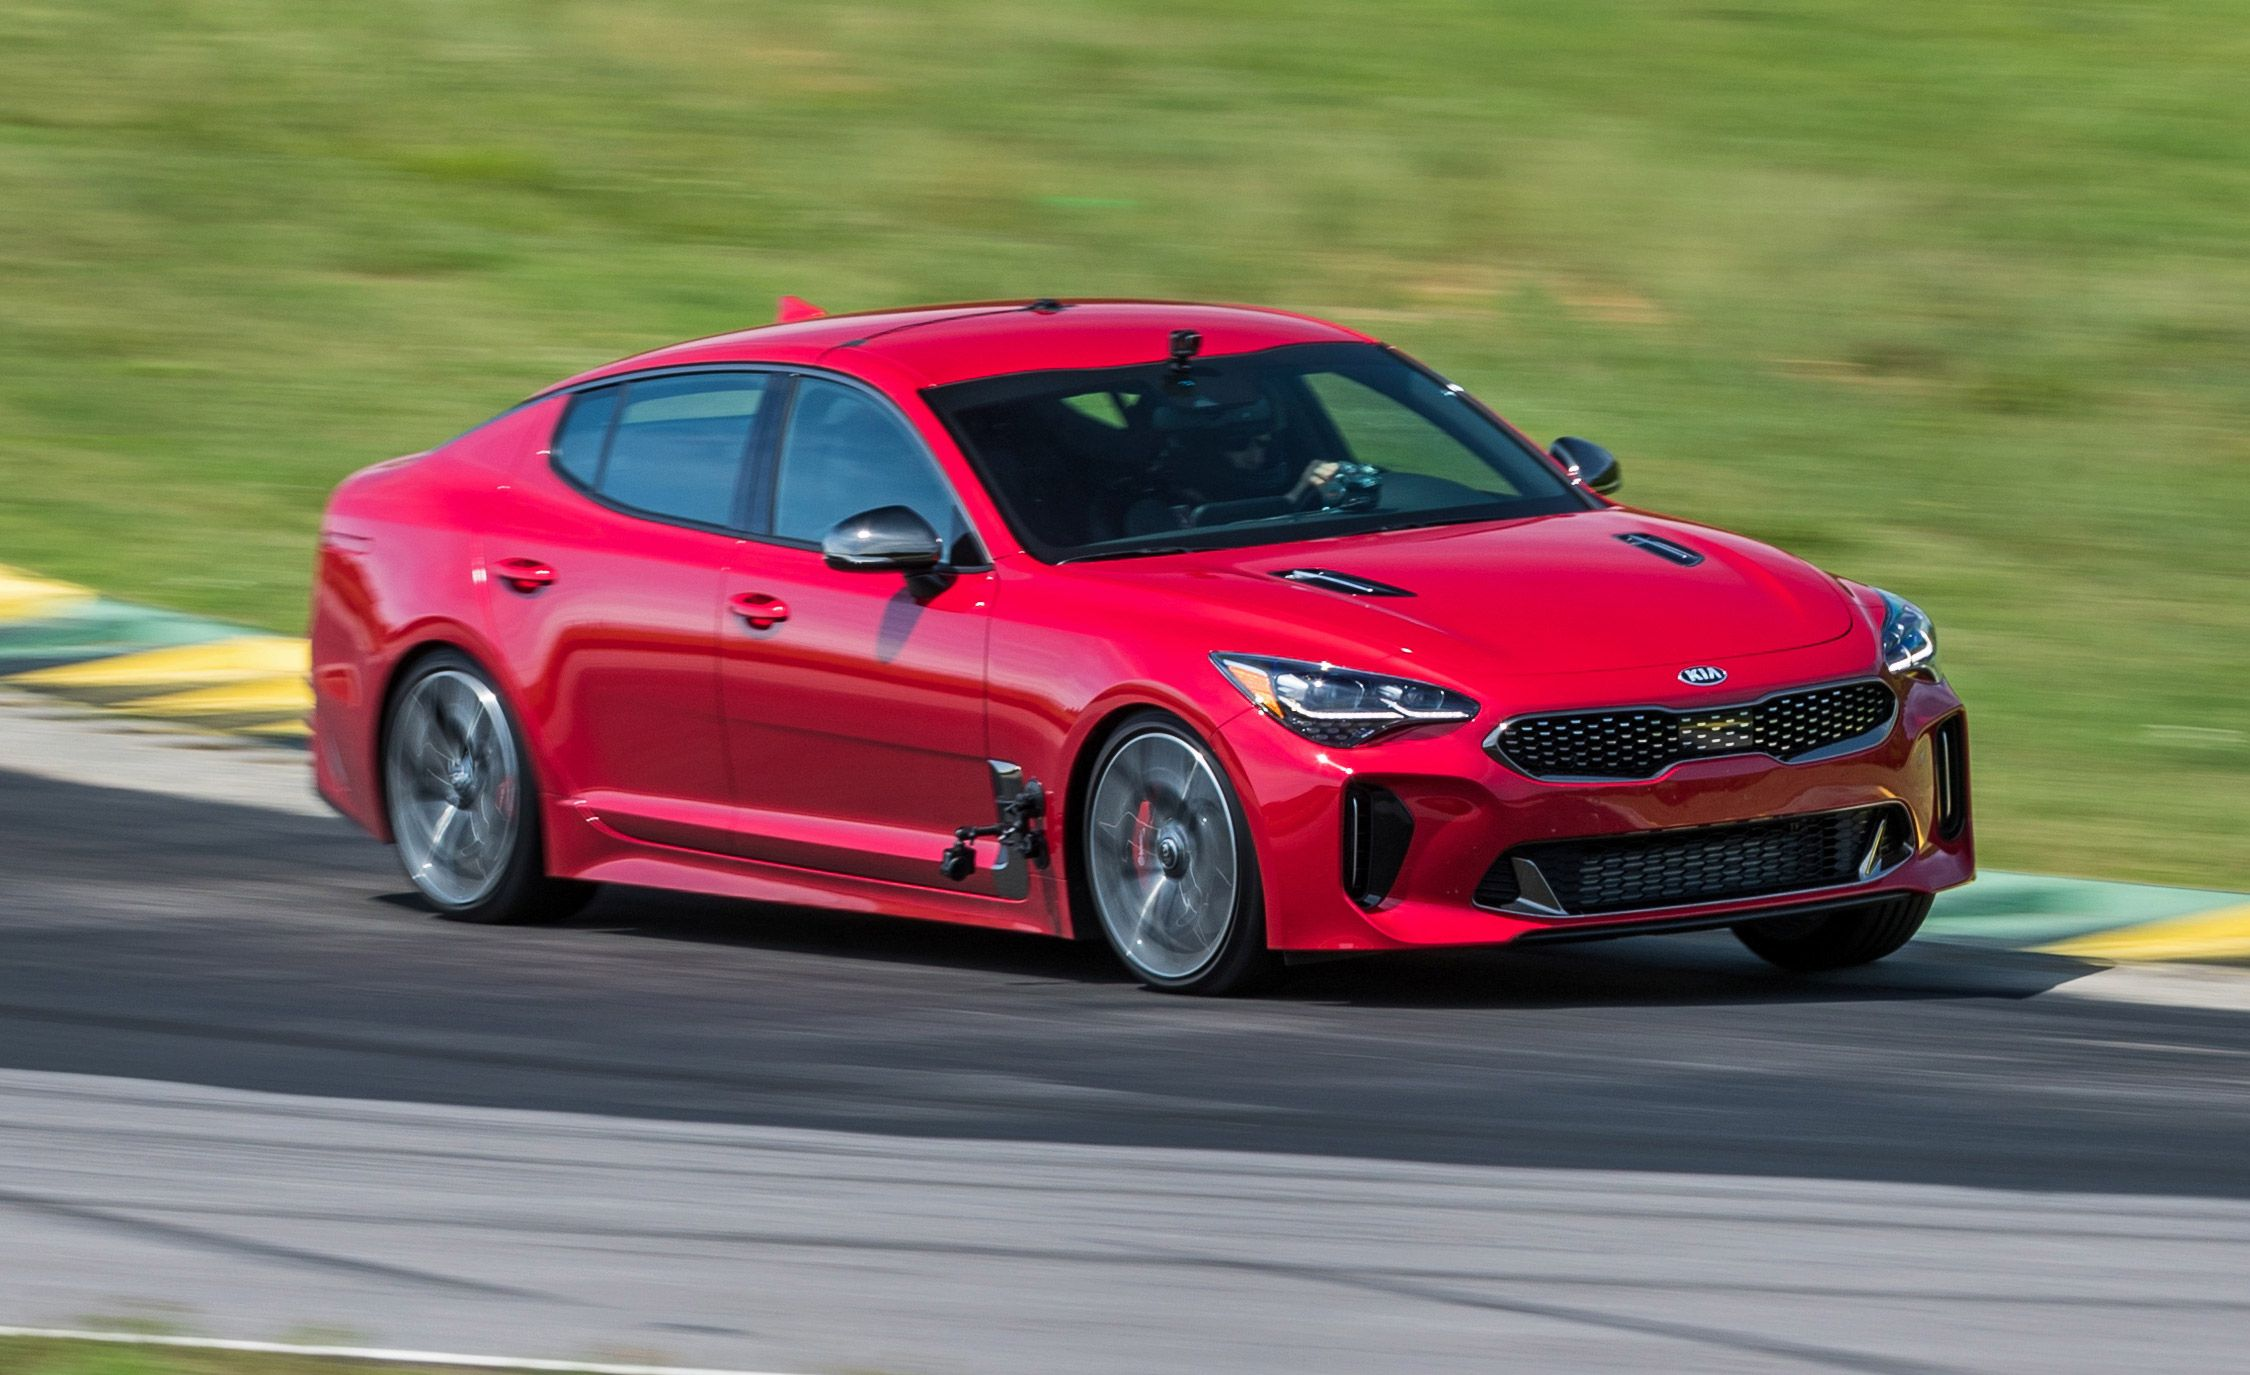 2018 Kia Stinger GT at Lightning Lap 2018